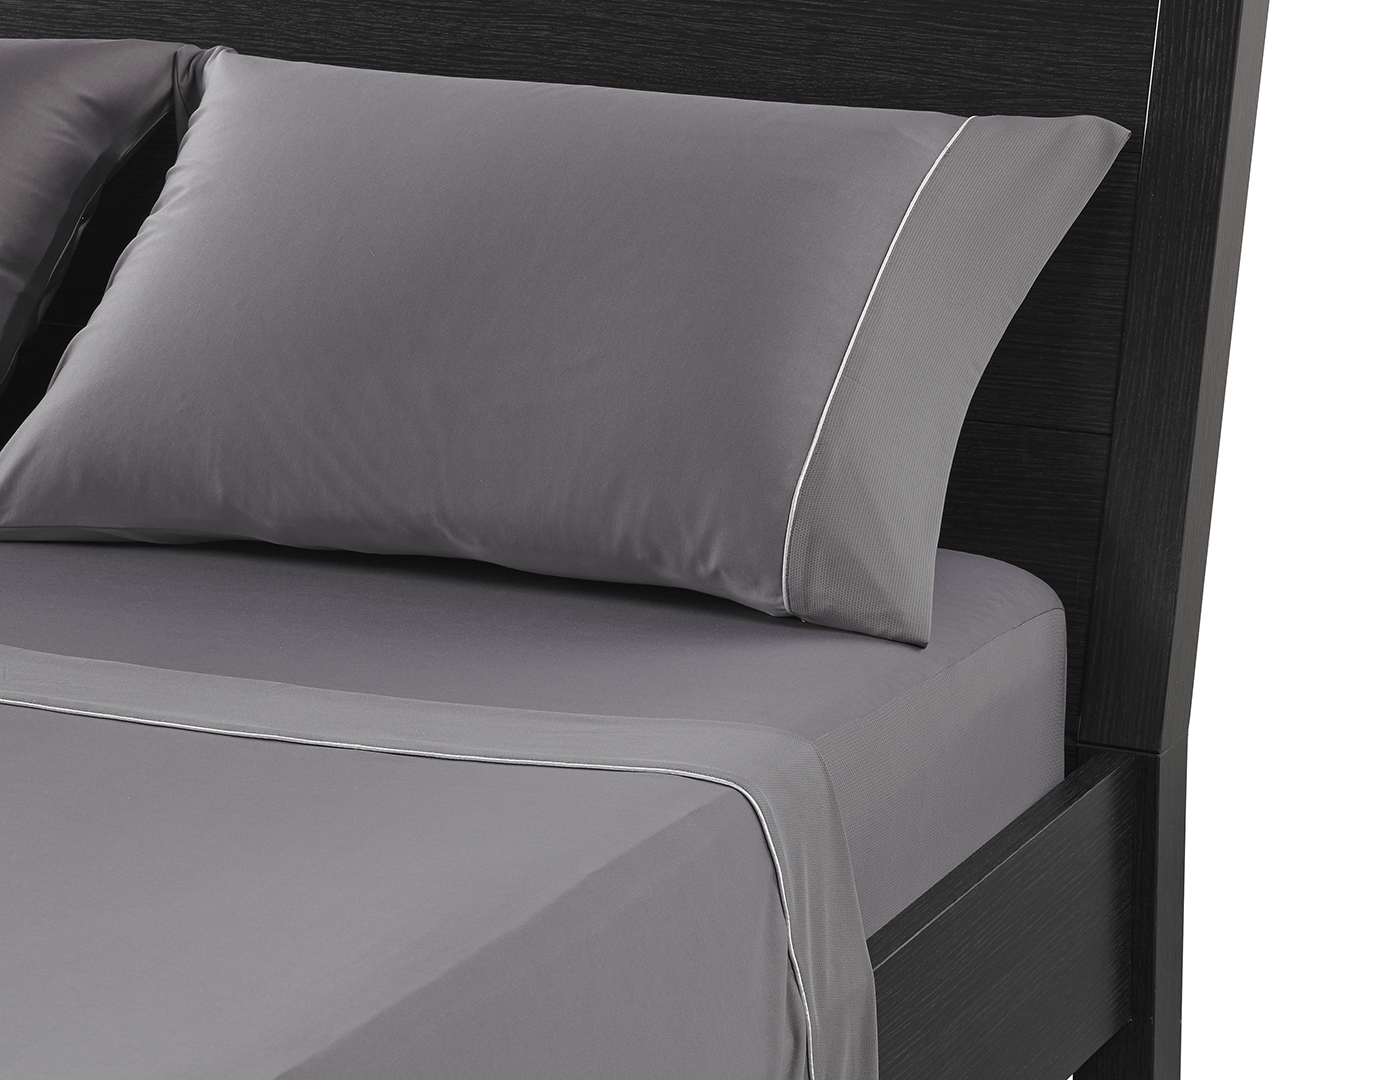 bedgear Dri-Tec Grey Queen Sheets